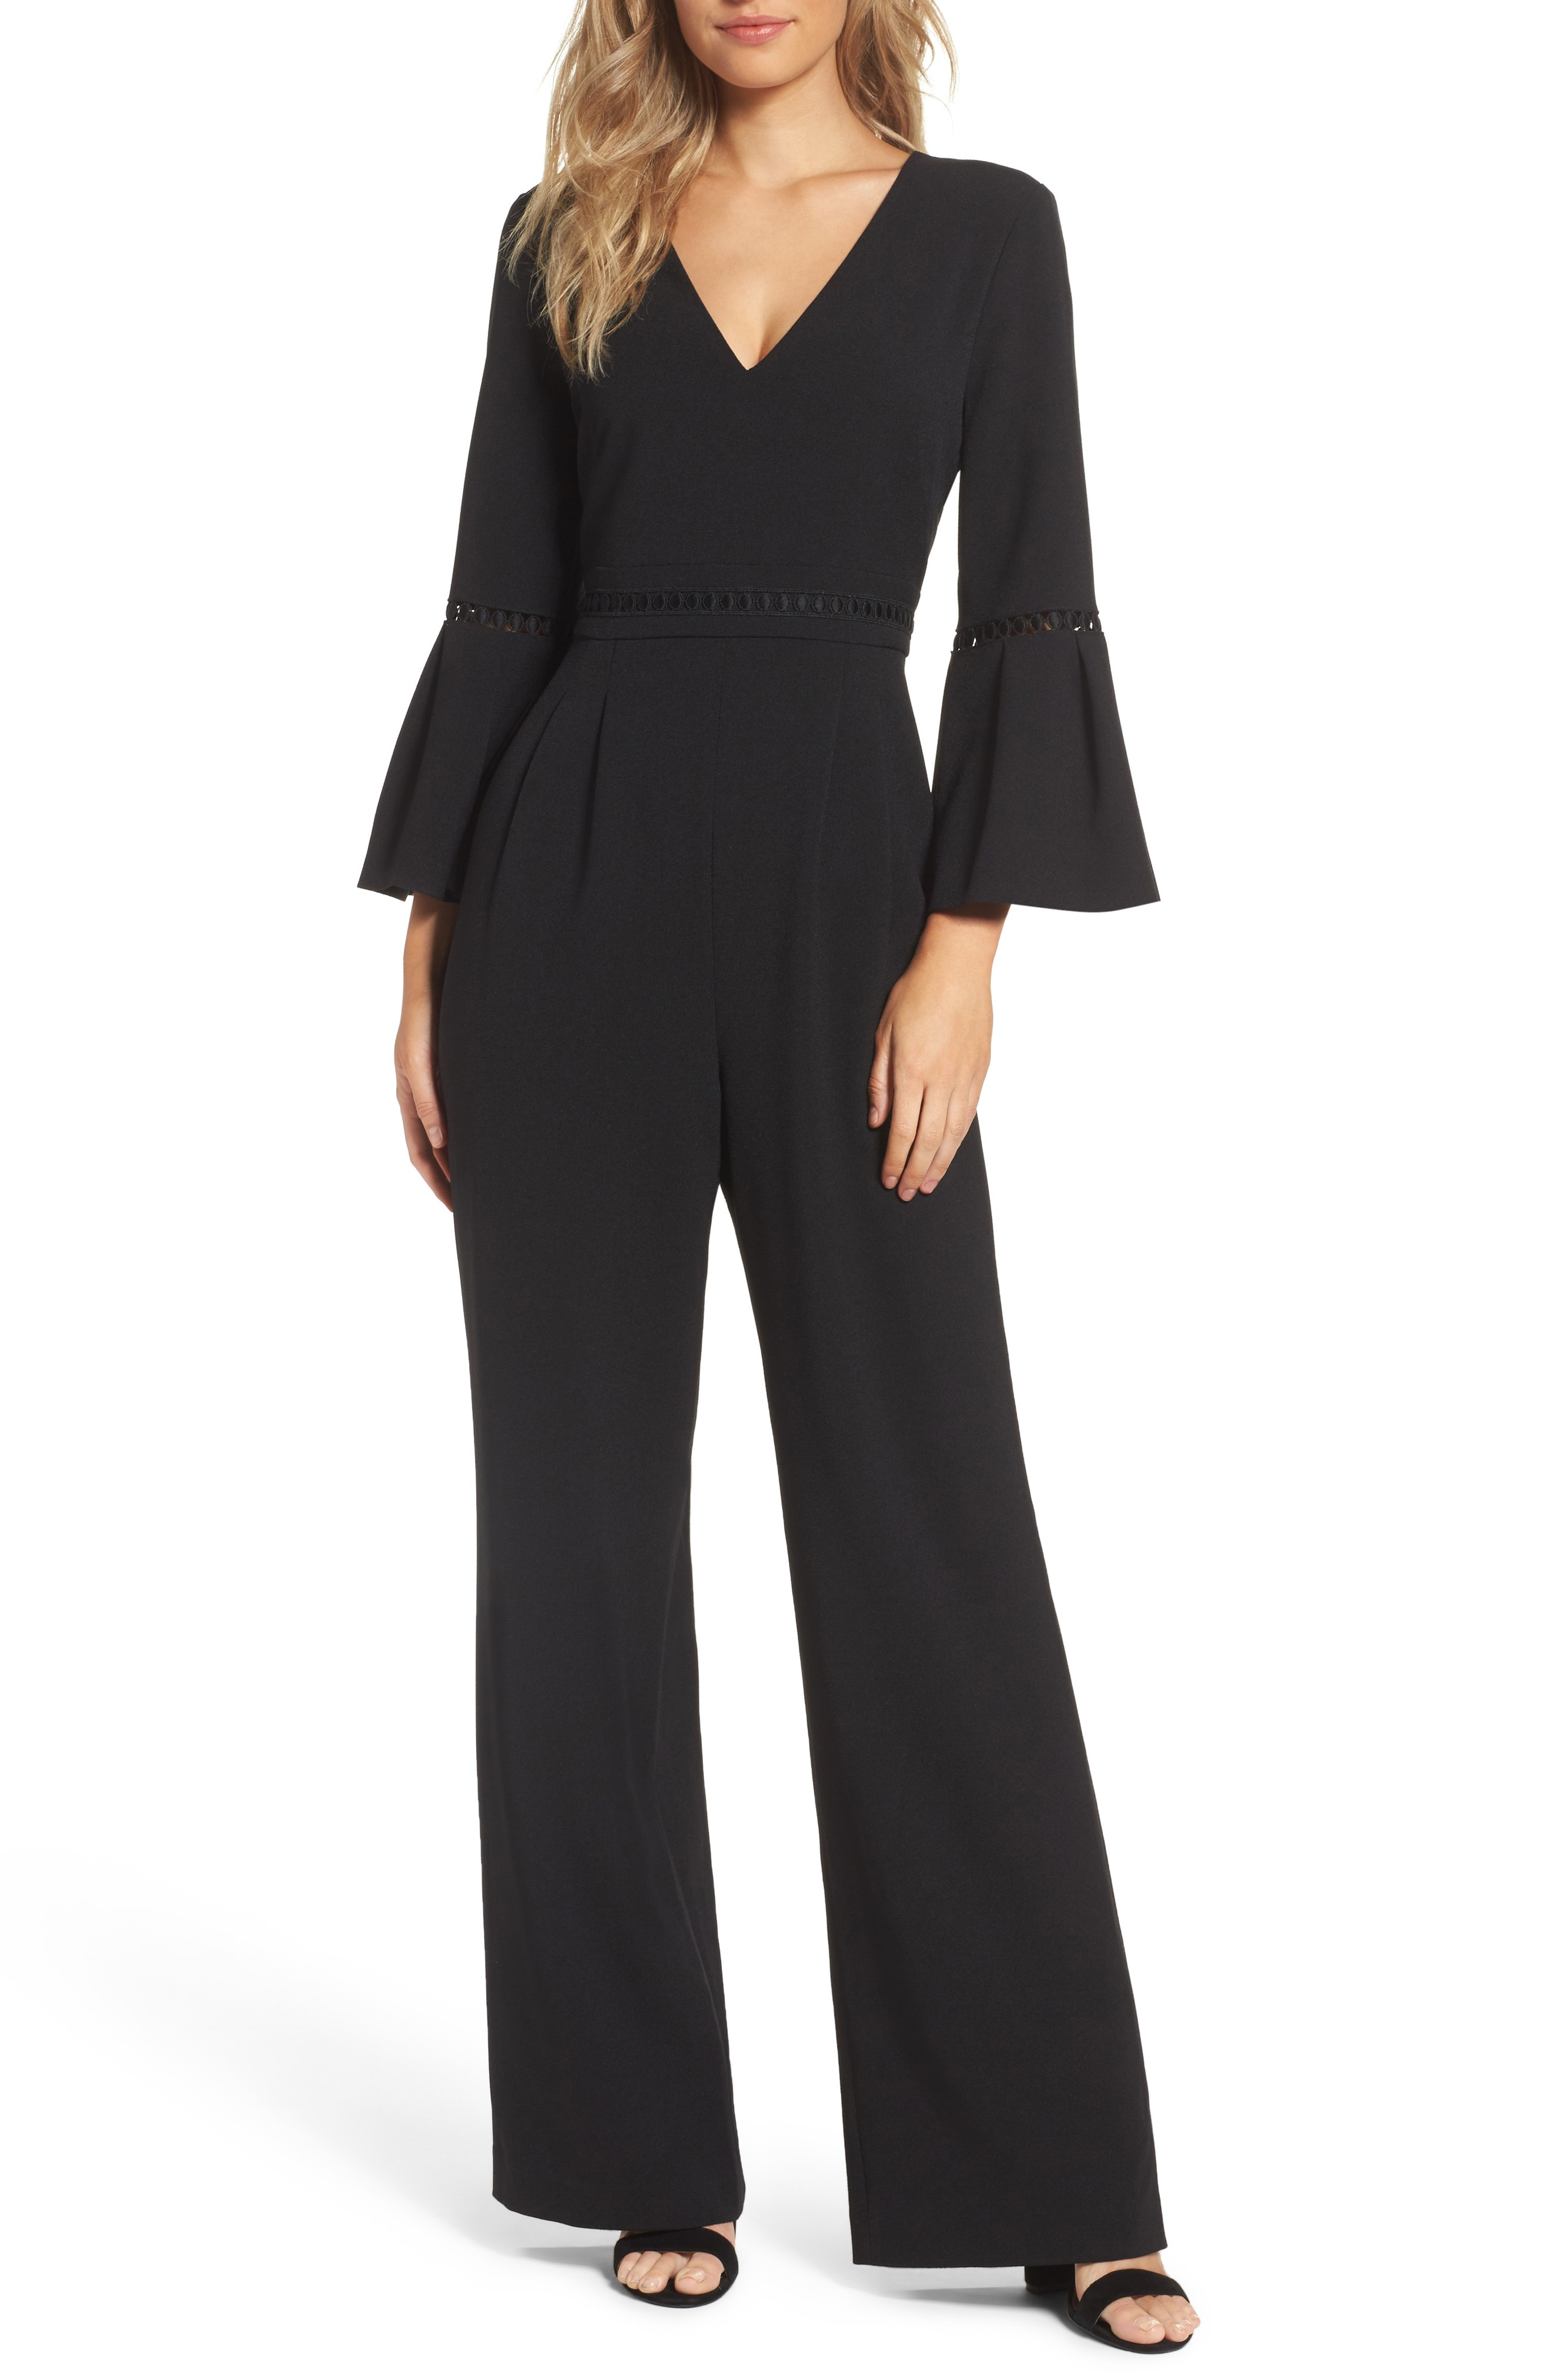 Women's Long Sleeve Jumpsuits & Rompers | Nordstrom